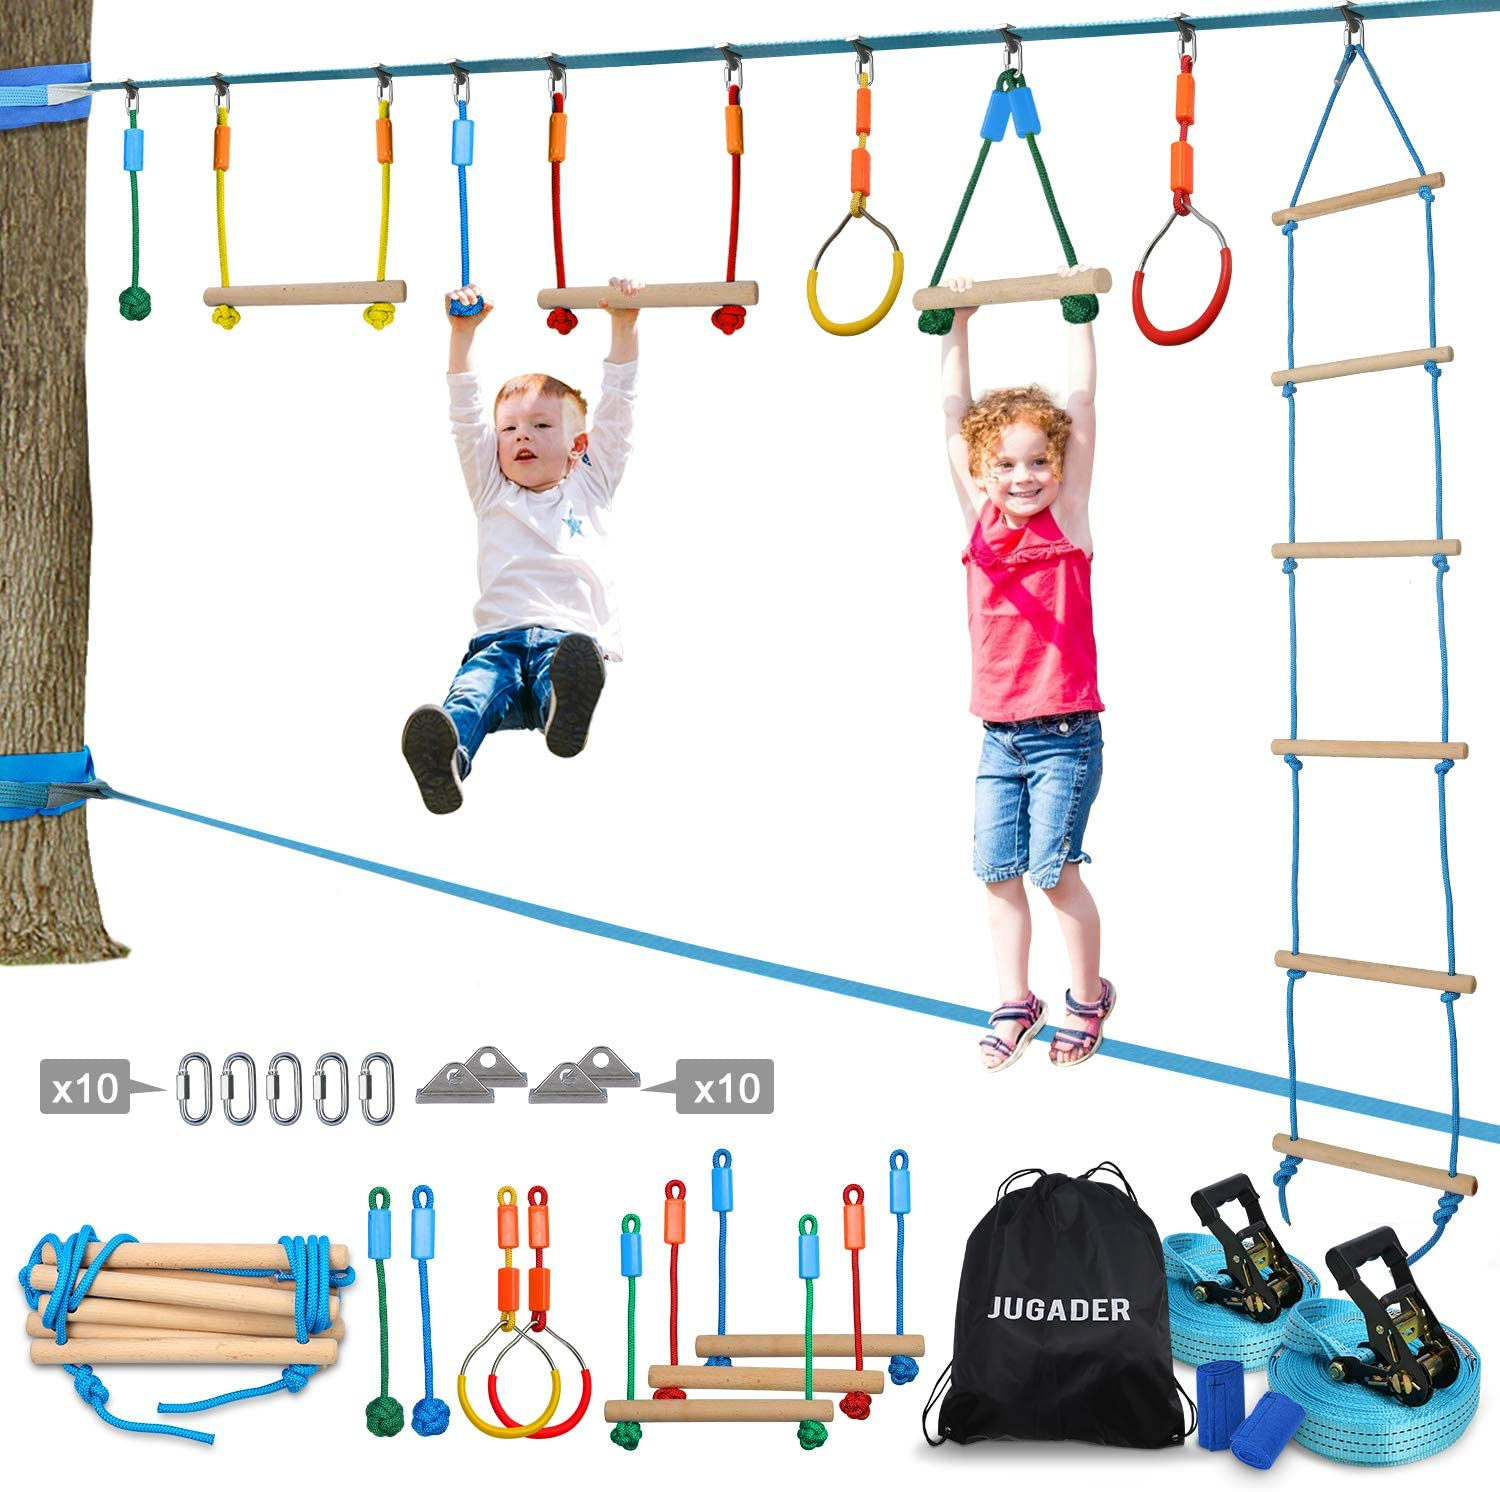 Jugader Ninja Warrior Obstacle Course for Kids - 50FT Ninja Slackline with Ladder, Gym Rings, Monkey Bars, Rope Knots (Ninja Line + Slack Line)